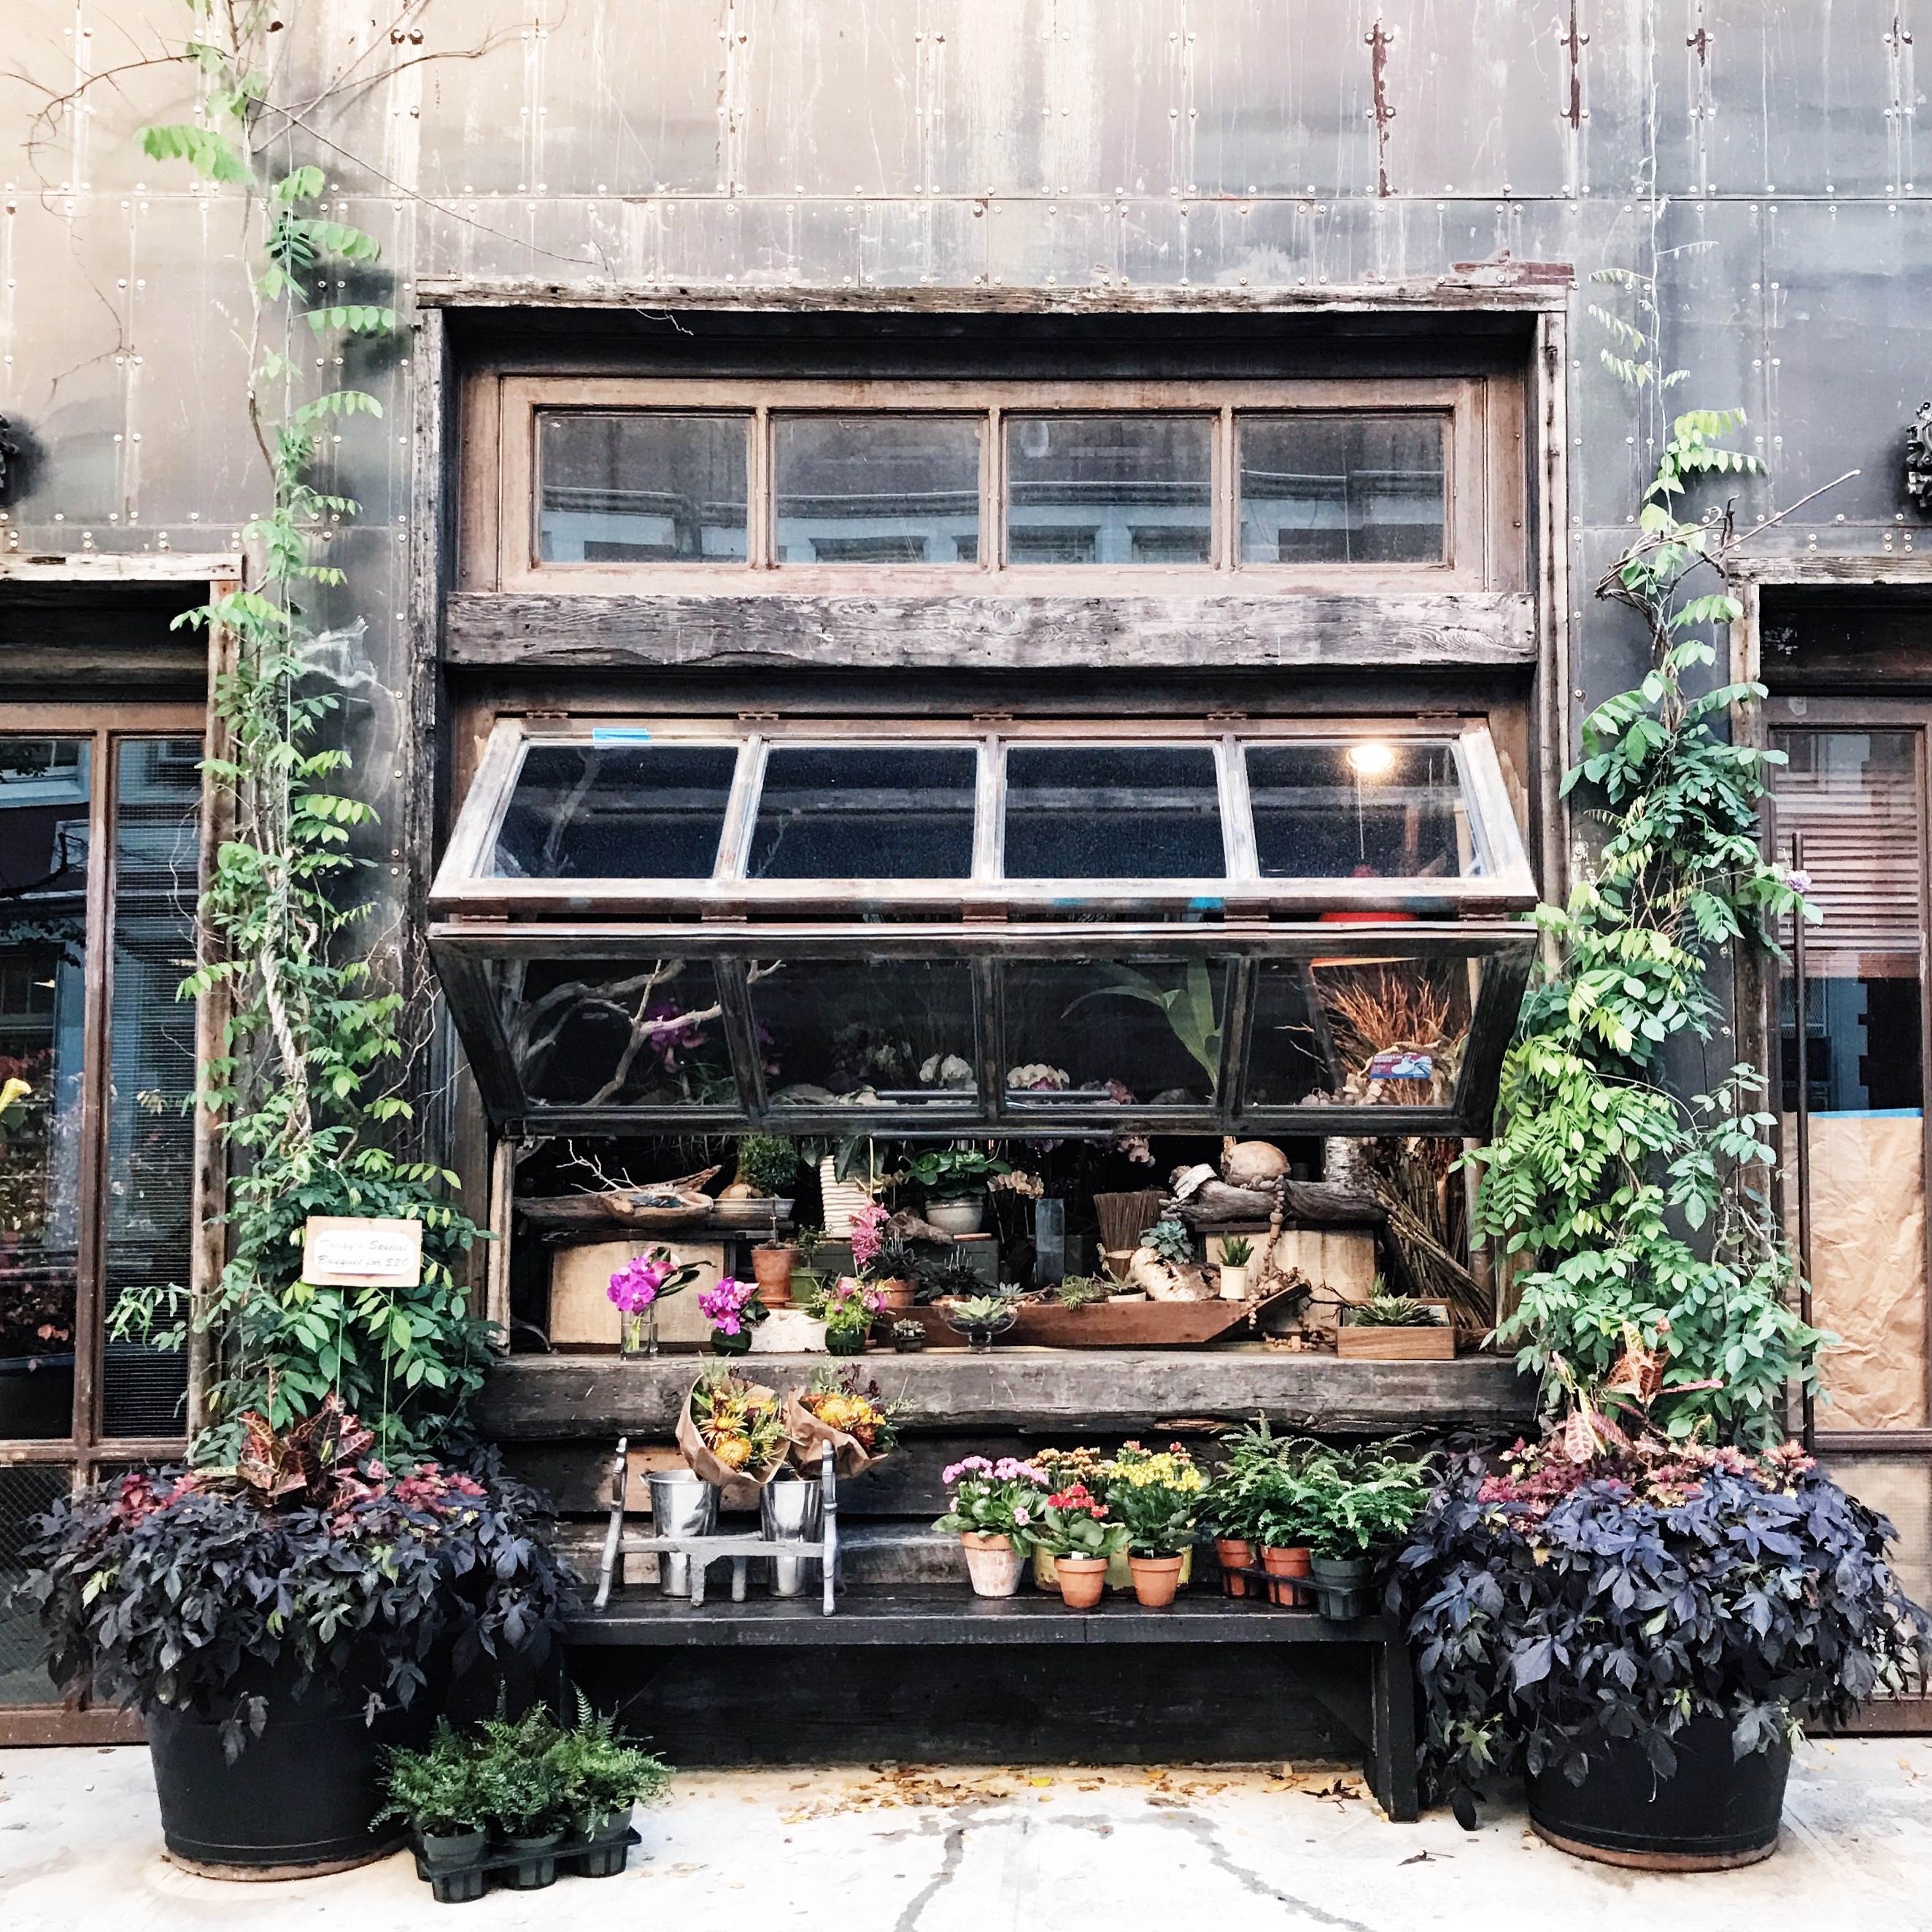 Floral shop tucked away in the East Village